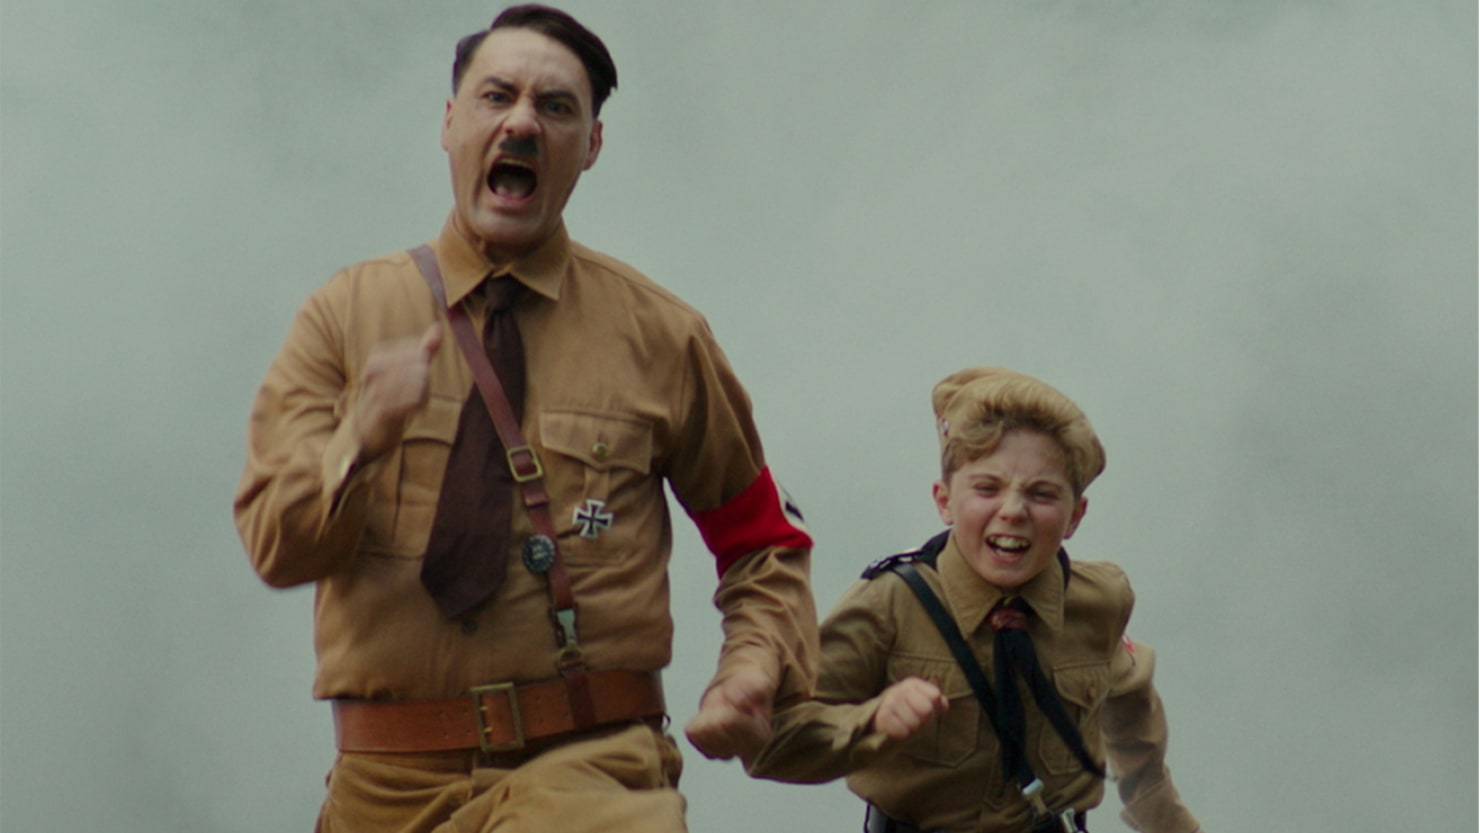 'Jojo Rabbit': Taika Waititi's Nazi Satire Tries and Fails to Find the Funny in Fascism